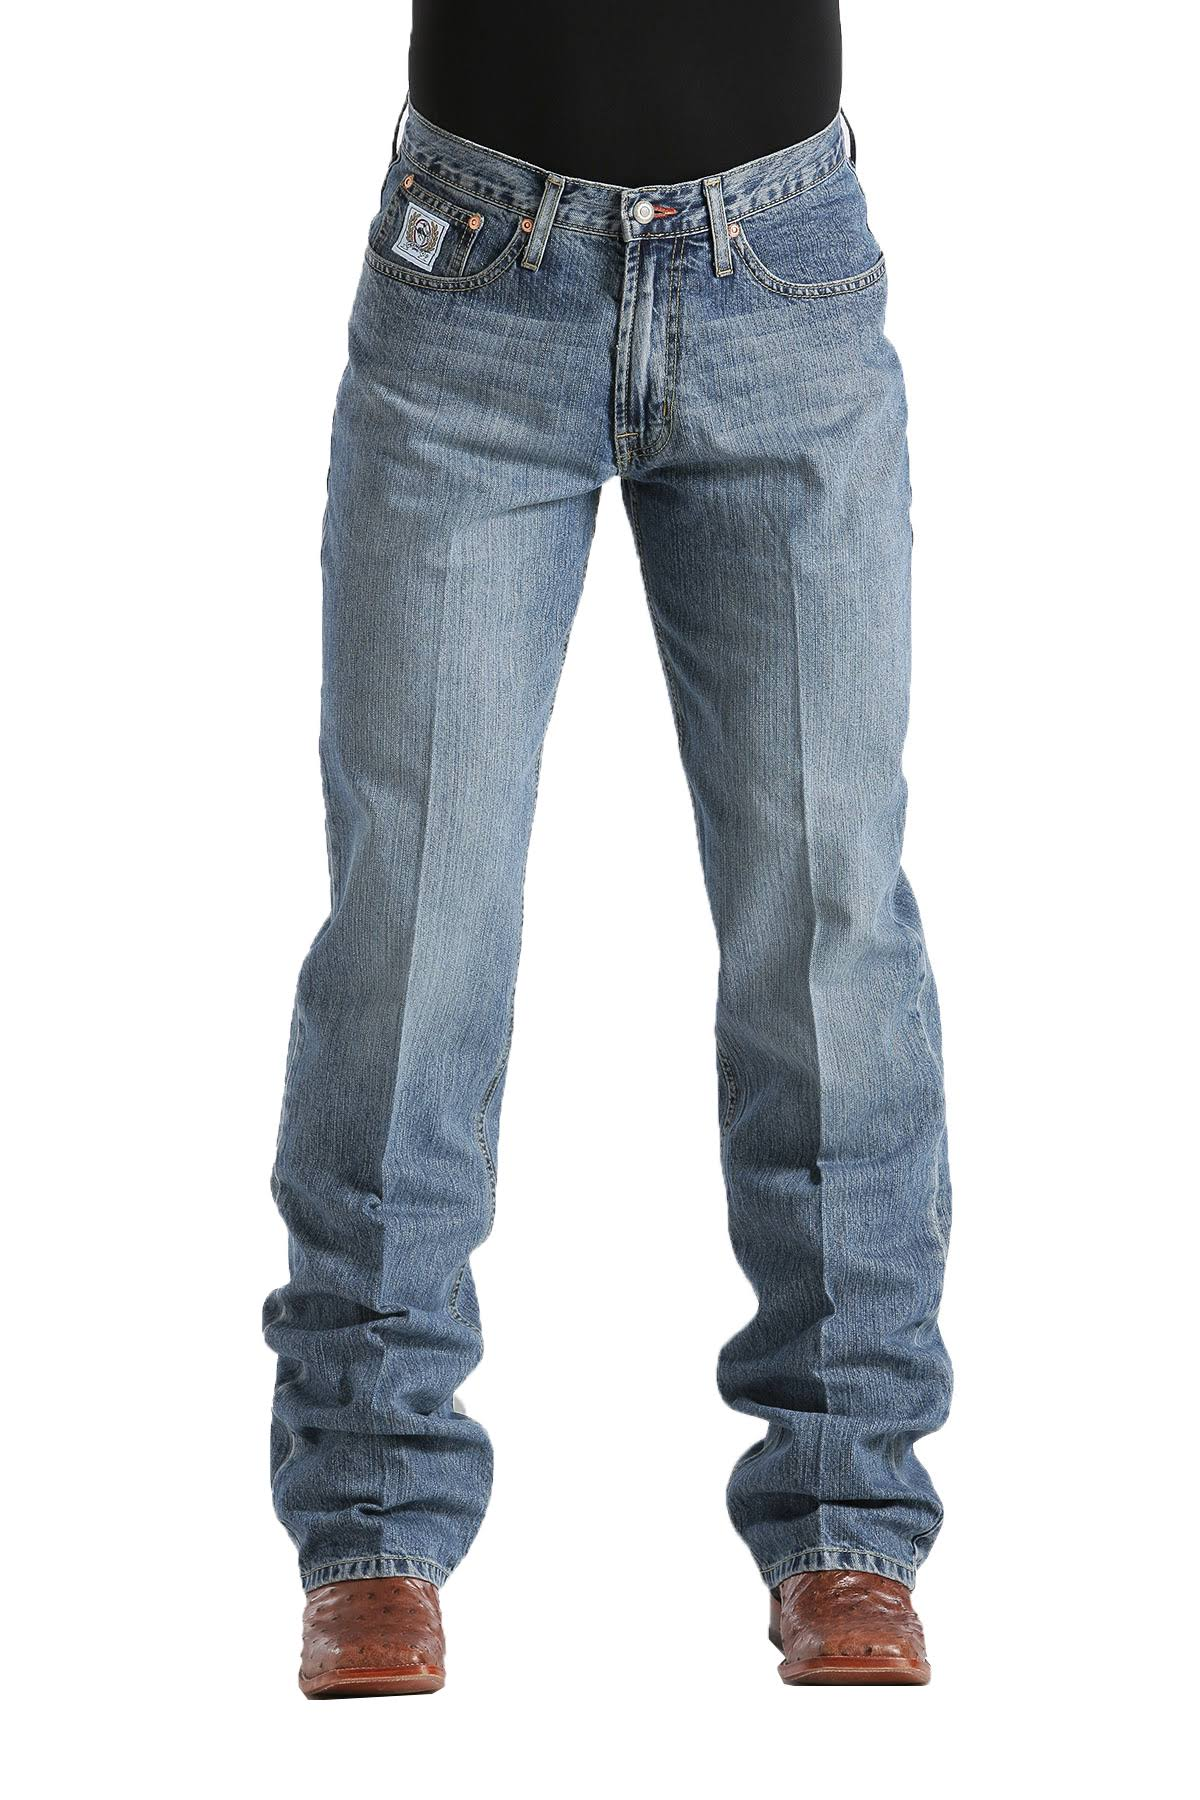 Men's White Label Cinch Jeans